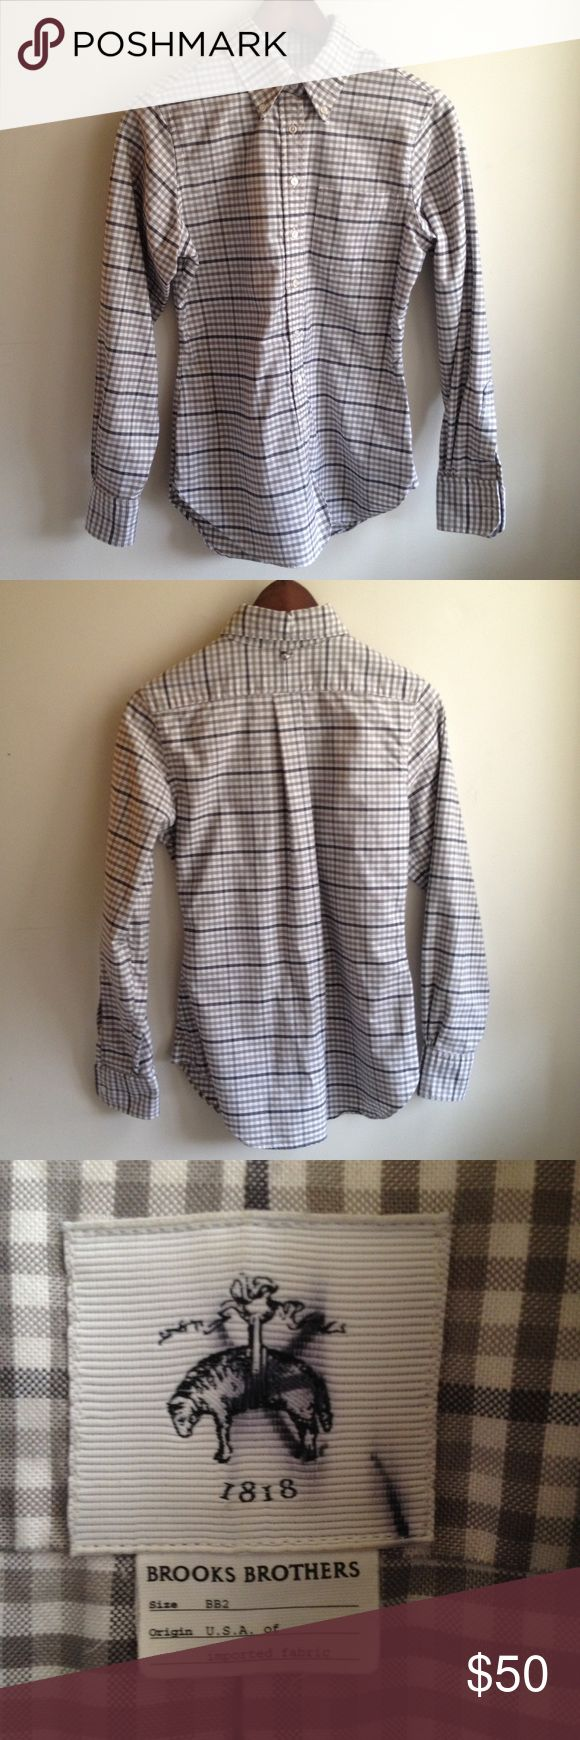 Black Fleece Women's Oxford Shirt Black Fleece by Brooks Brothers Oxford button up shirt. Size BB2 (size equivalent is US 4 or size Small), 100% cotton. Made in USA. New condition, never worn. Sample sale purchase with strike on garment tag as shown in photo. ✨ Bundle and save! Brooks Brothers Tops Button Down Shirts